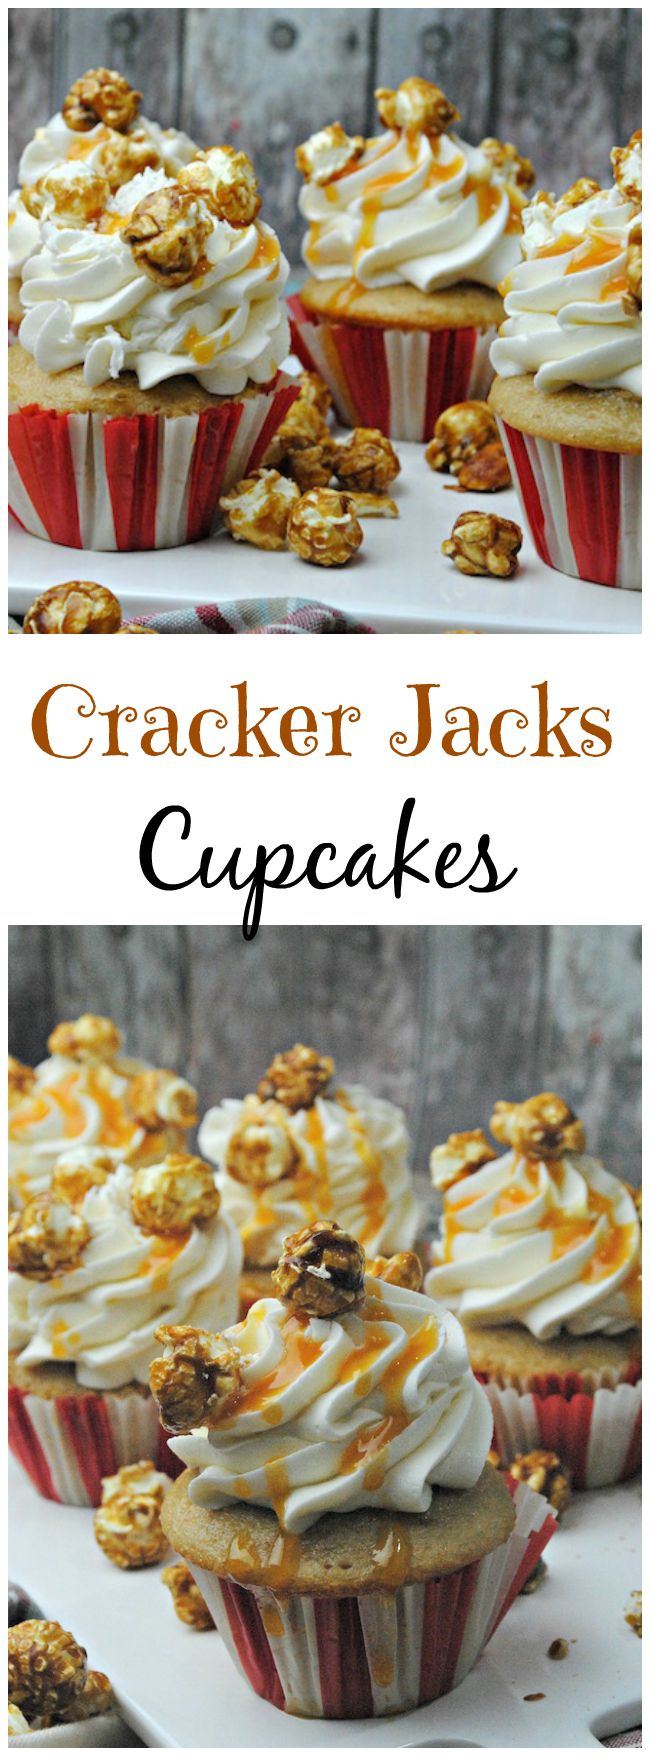 Cracker Jacks Cupcakes